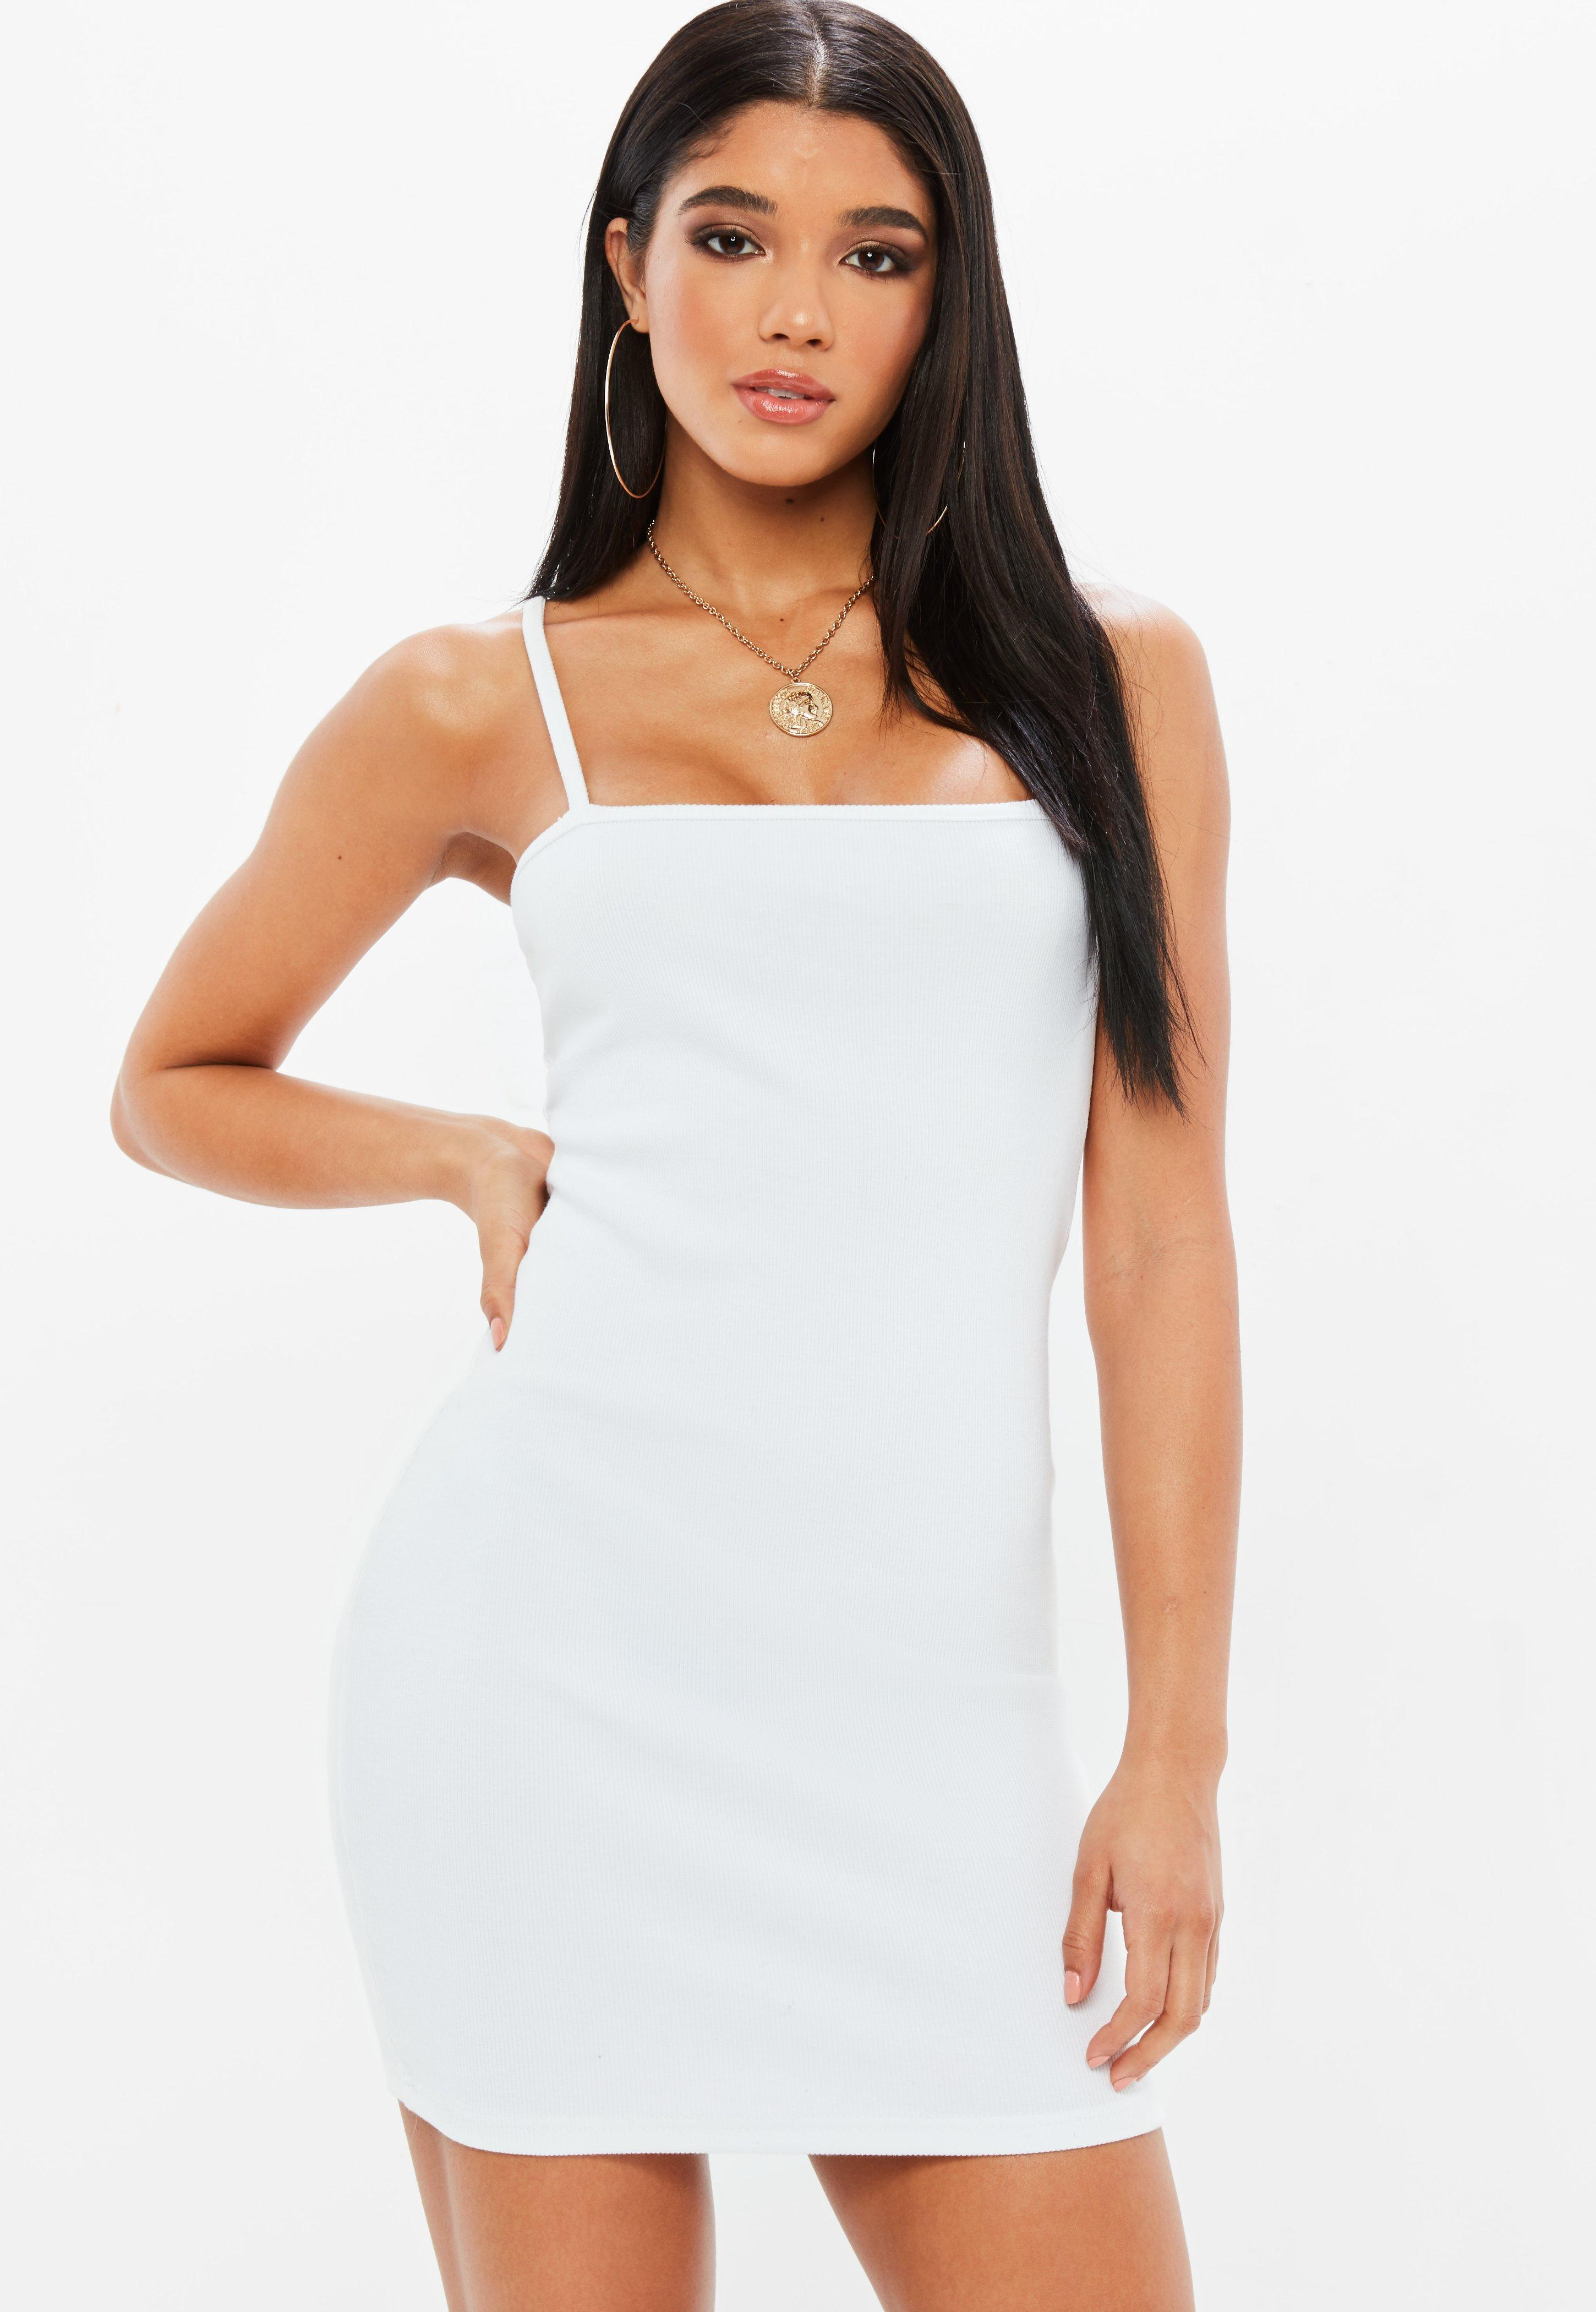 Club Dresses   Clubbing Outfits - Missguided 7a1f59e659